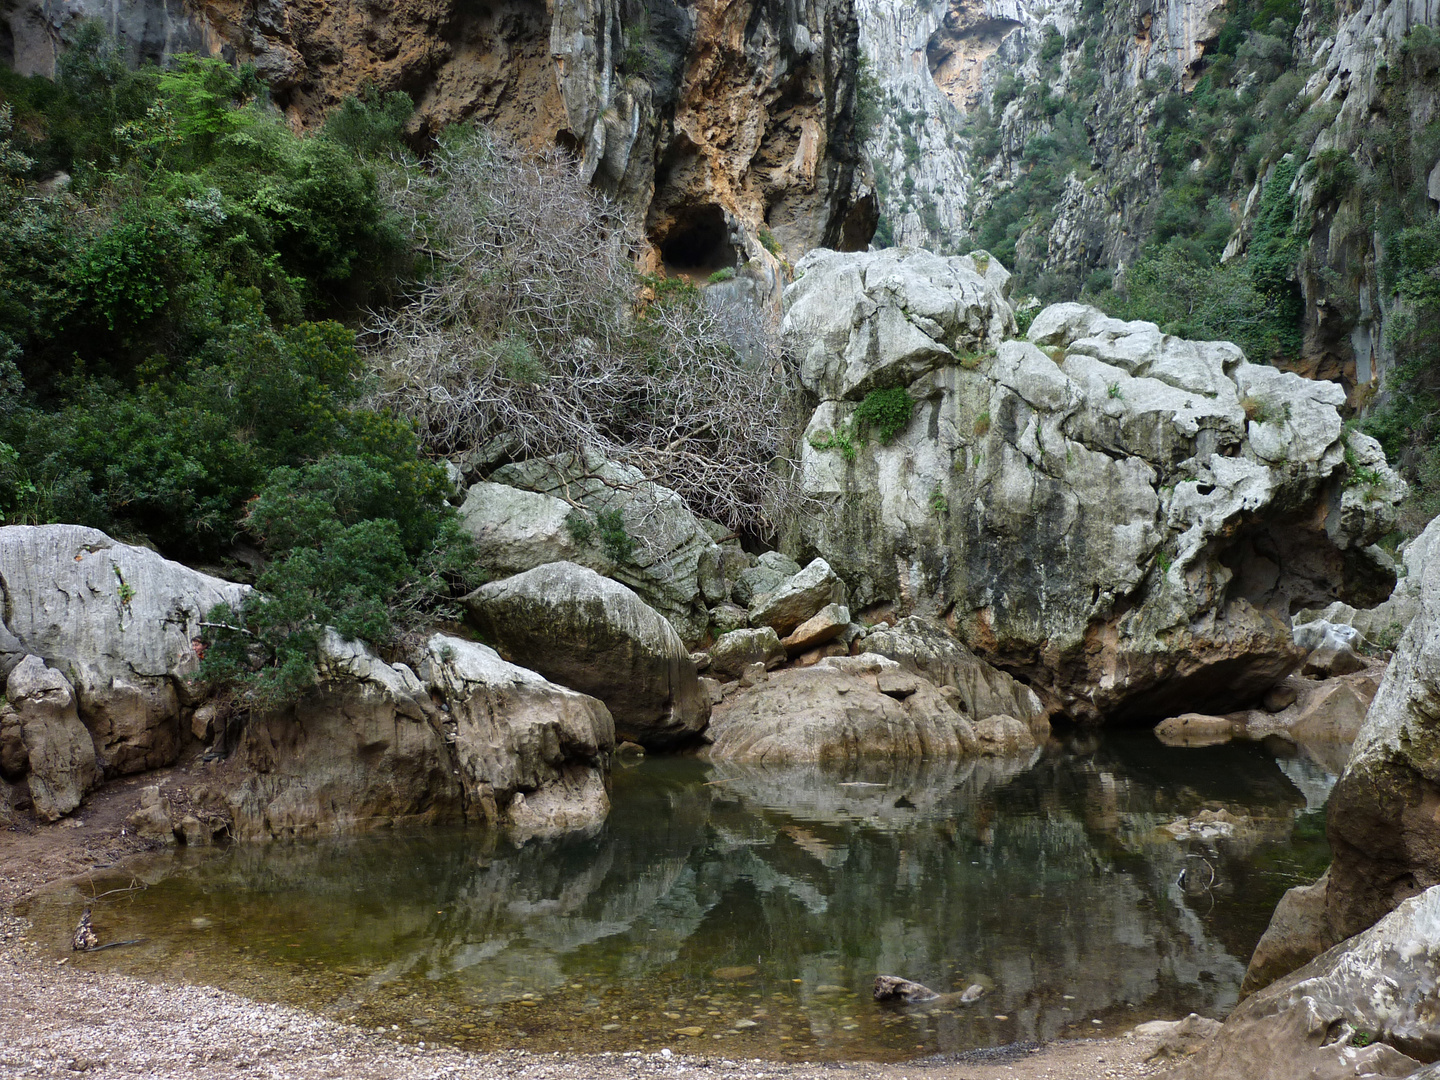 Mallorca Torrent de Pareis 2